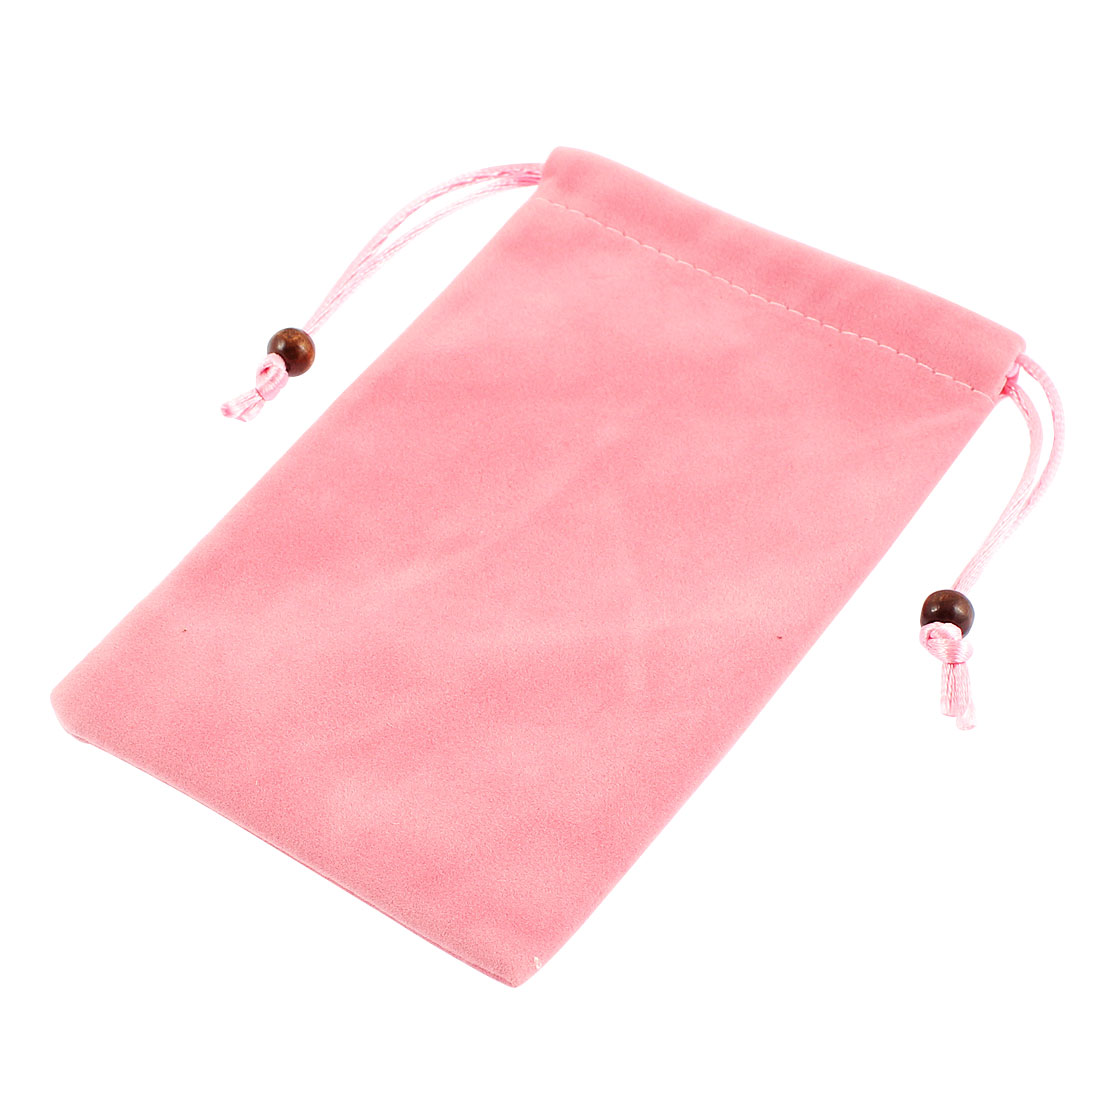 Drawstring Closure Cell Phone MP3 MP4 Pouch Sleeve Bag Holder Light Pink